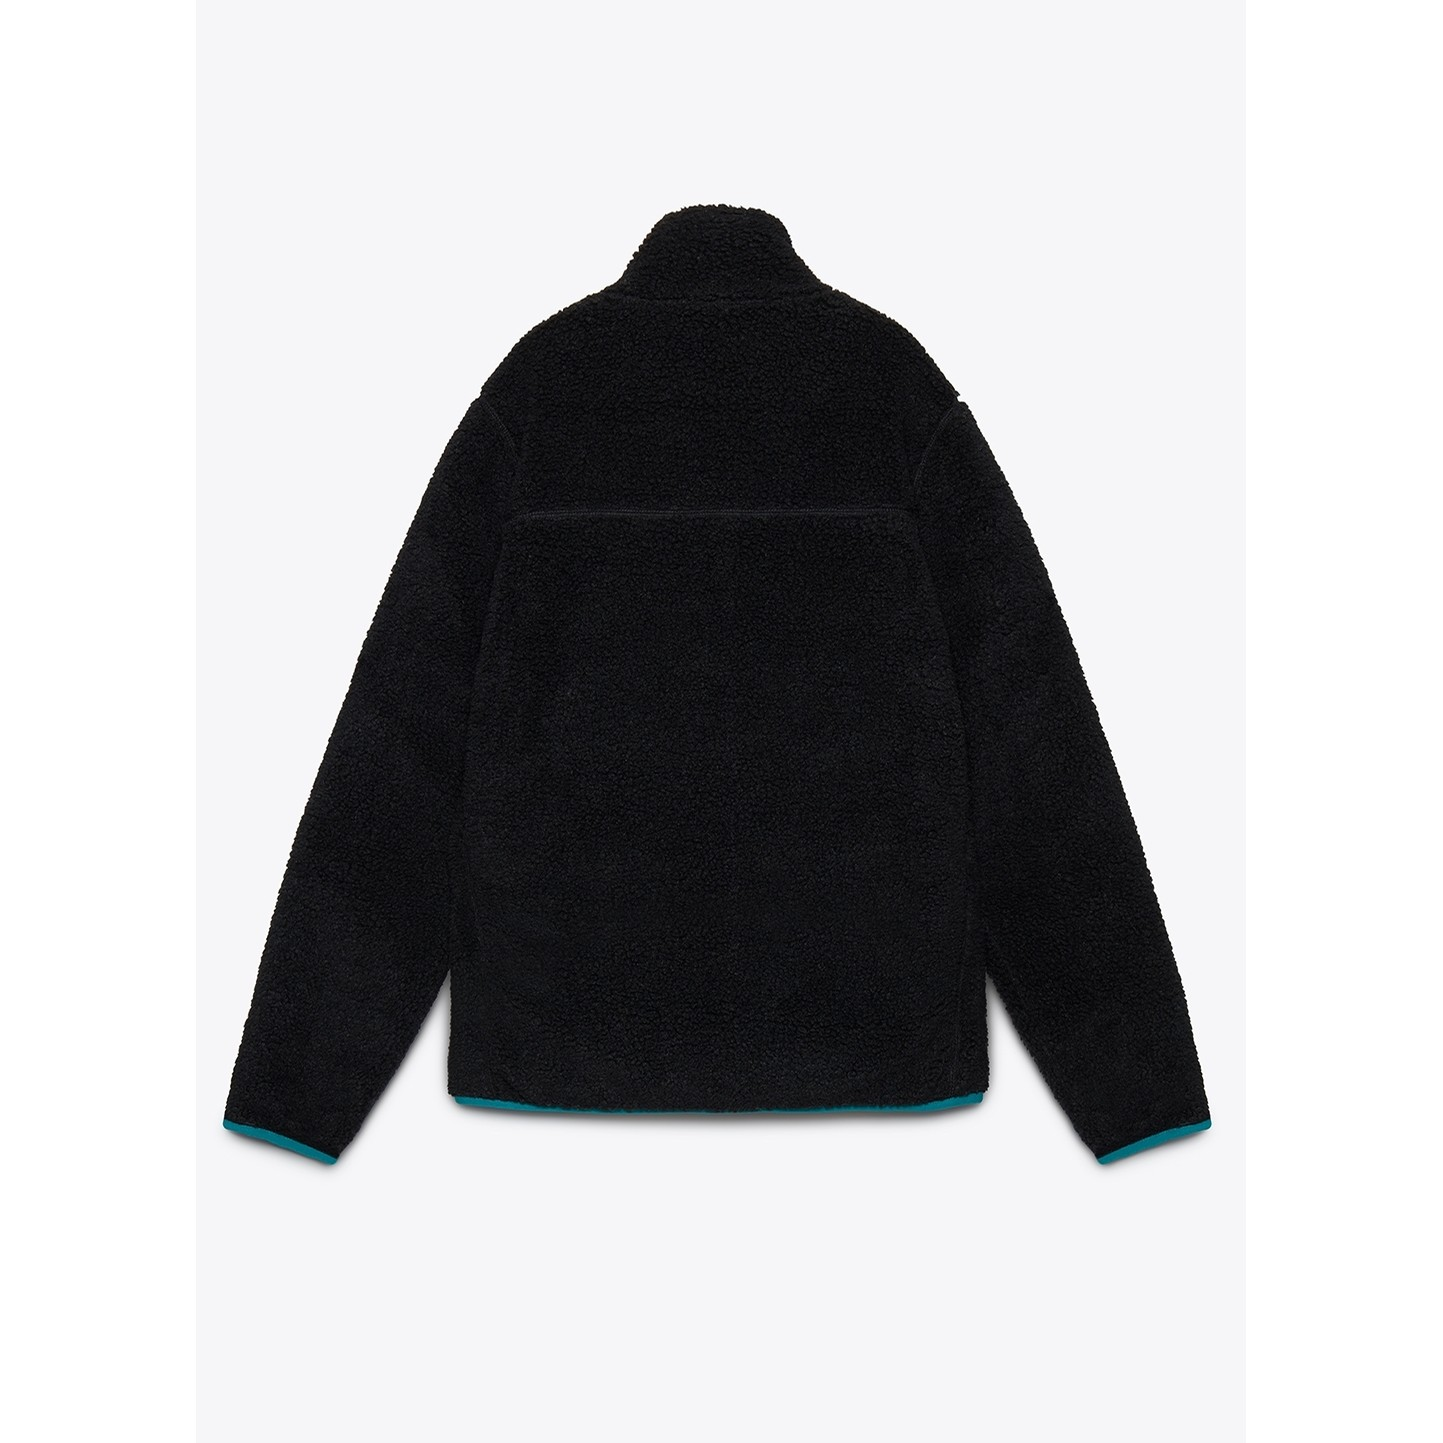 Mattawa Fleece: Black